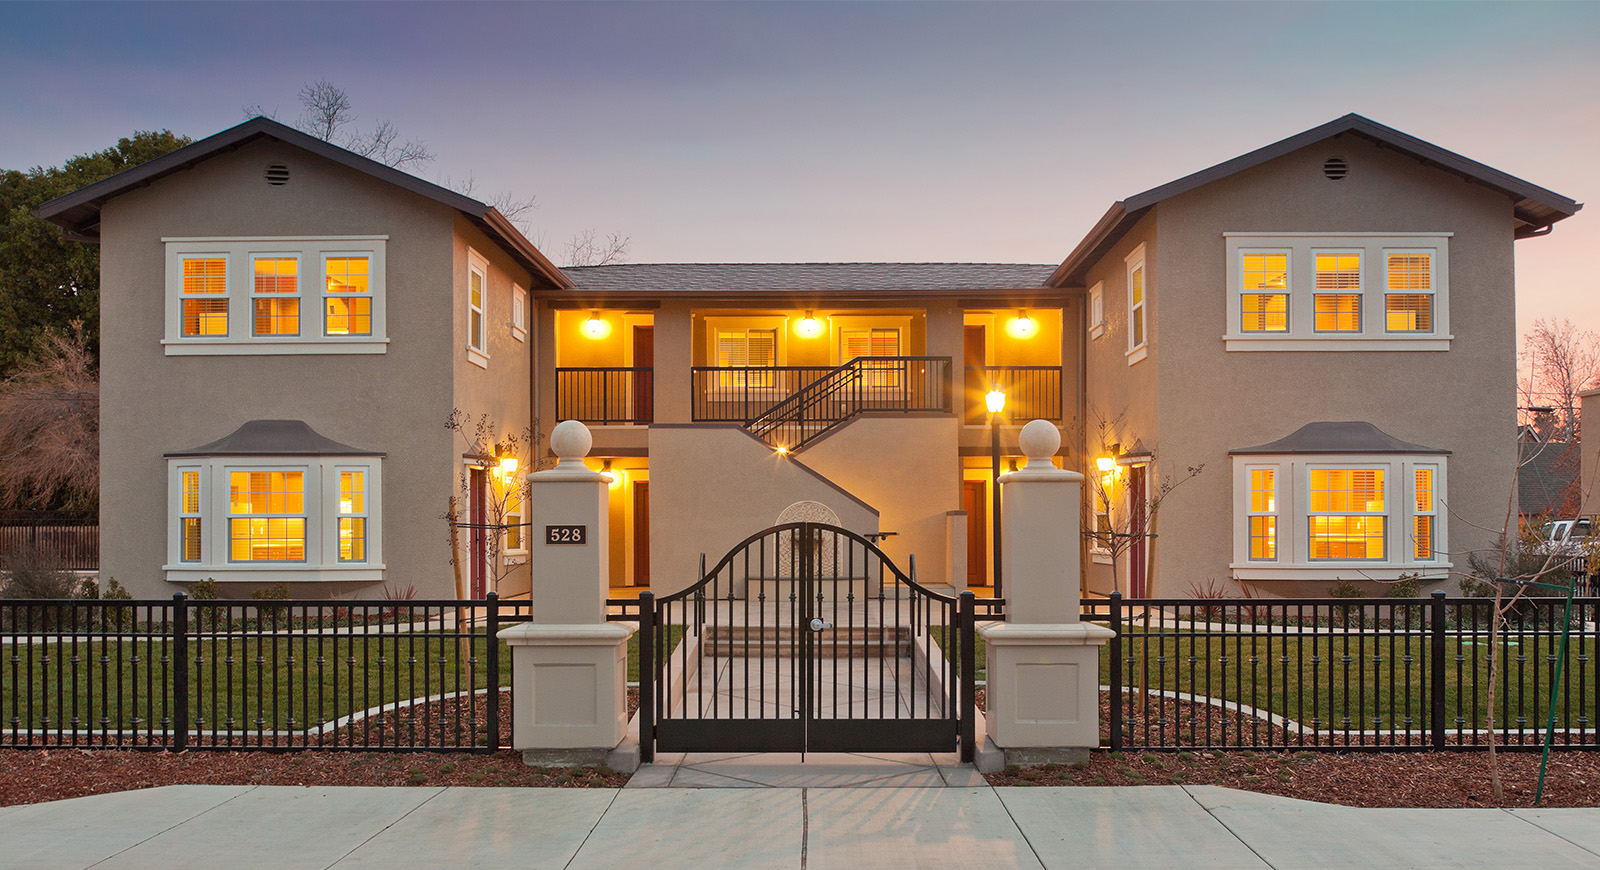 Hope Family Shelter Multi Family Residential Construction Companies Near Me Apartment Complex General Contractor Renovation Remodeling Home House Manteca Exterior Front